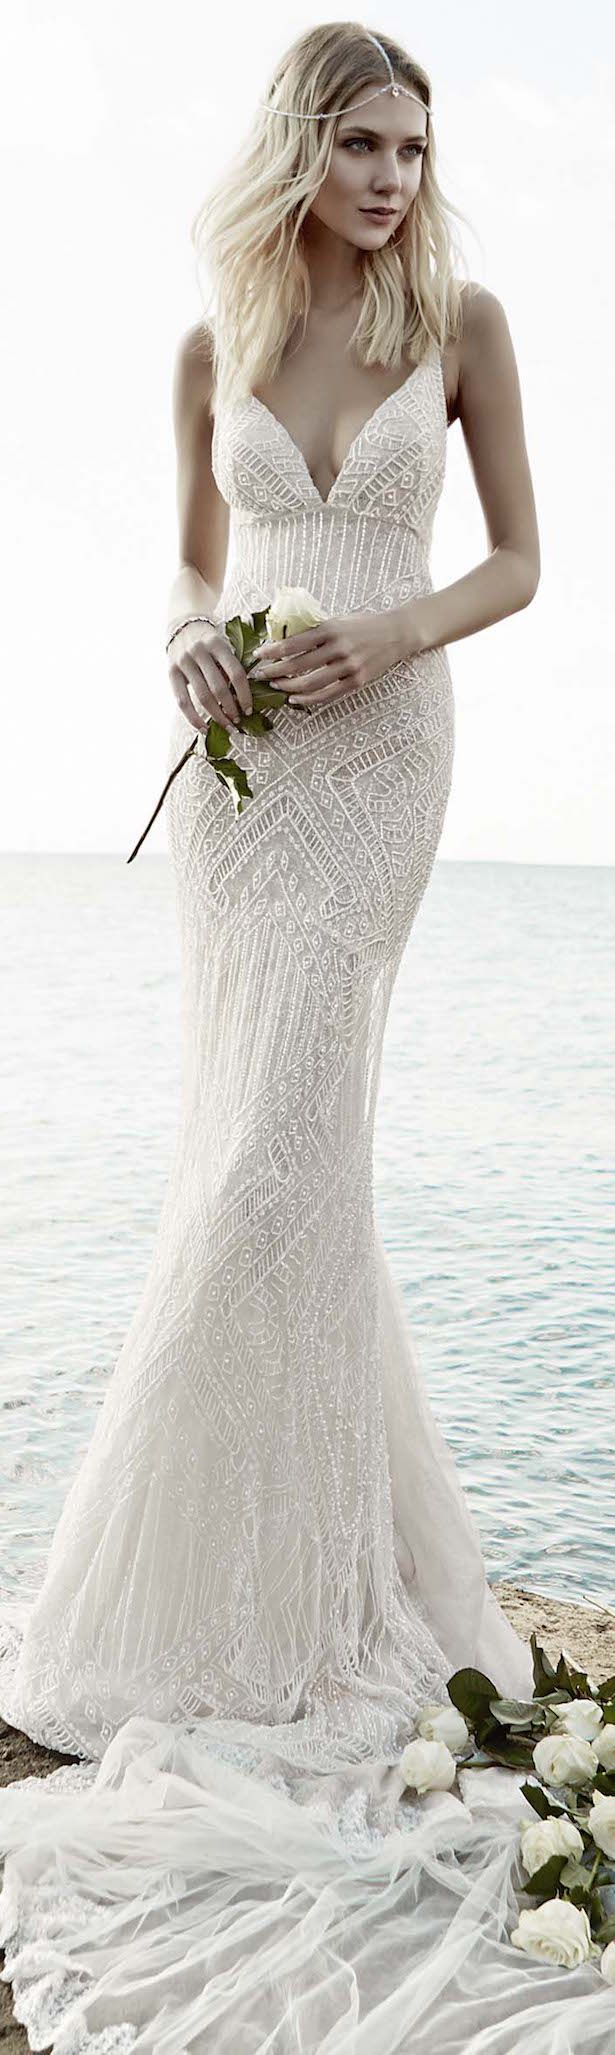 Victoria KyriaKides Bridal Fall 2016 - Floral Constellations ...